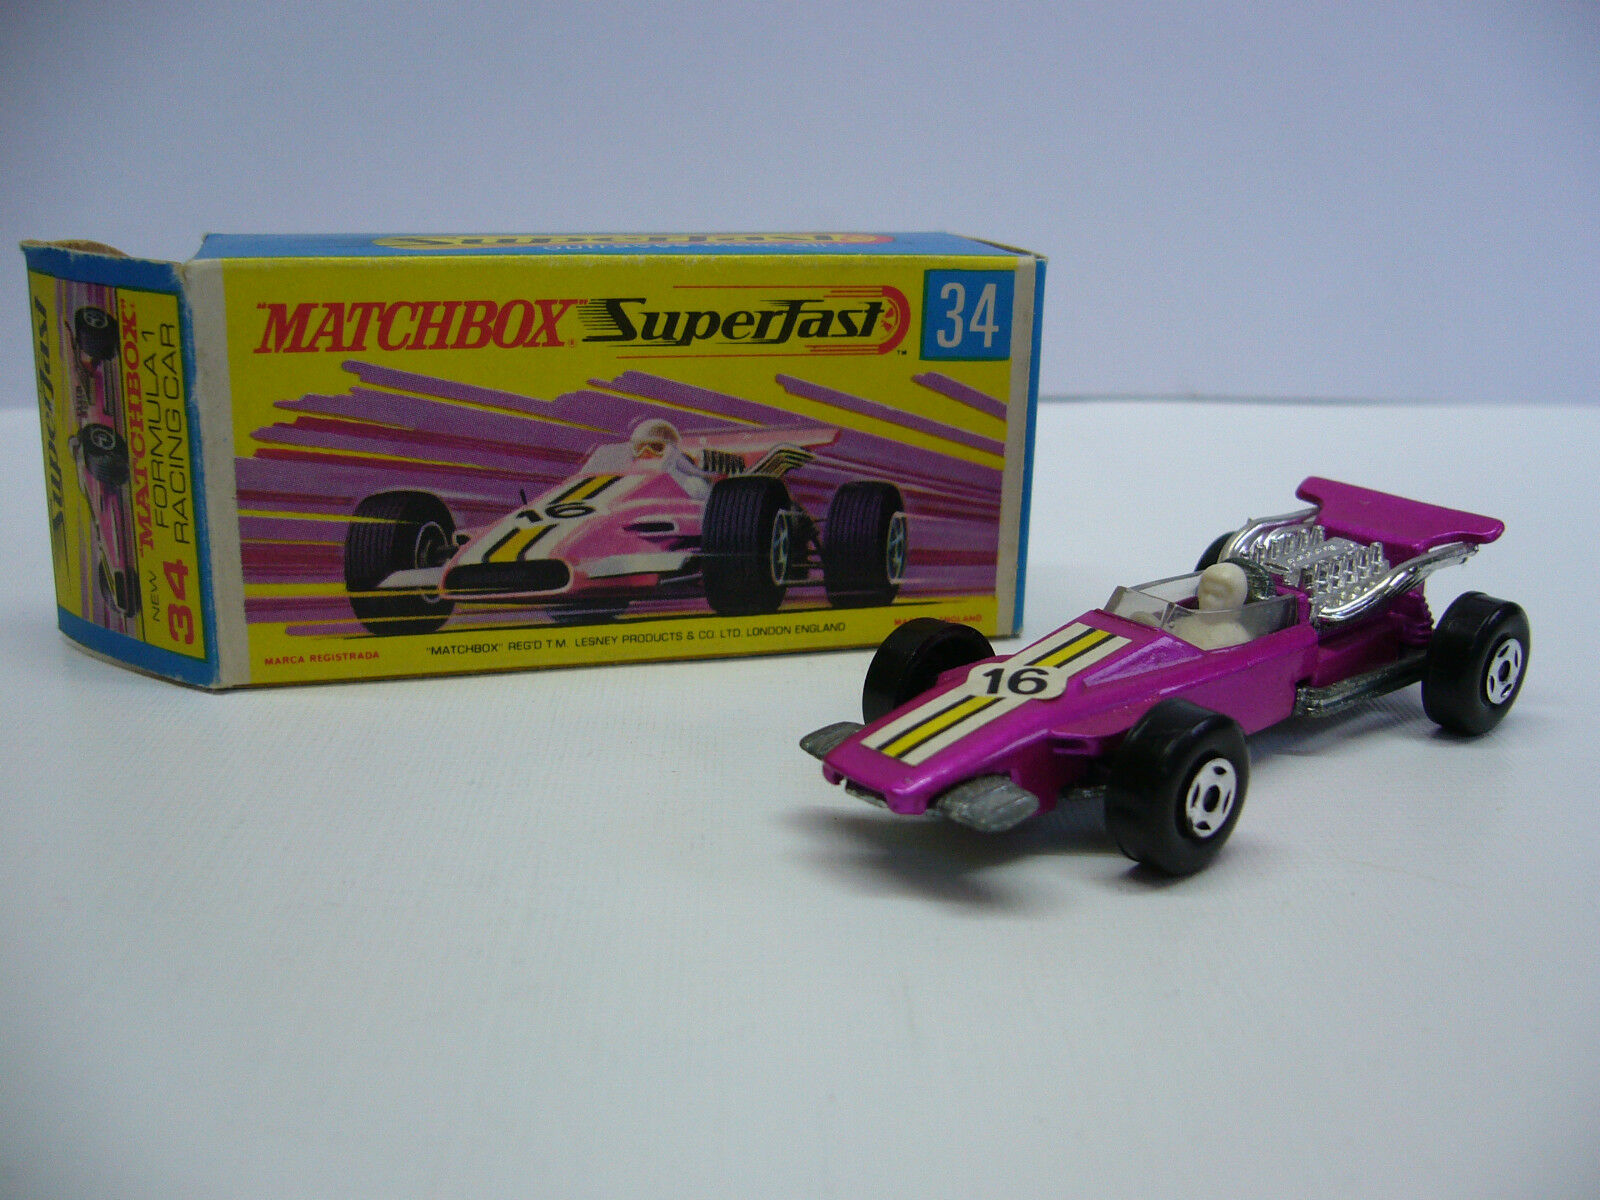 MATCHBOX SUPERFAST MB 34 formula 1 RACING CAR-Viola-Made in Inghilterra